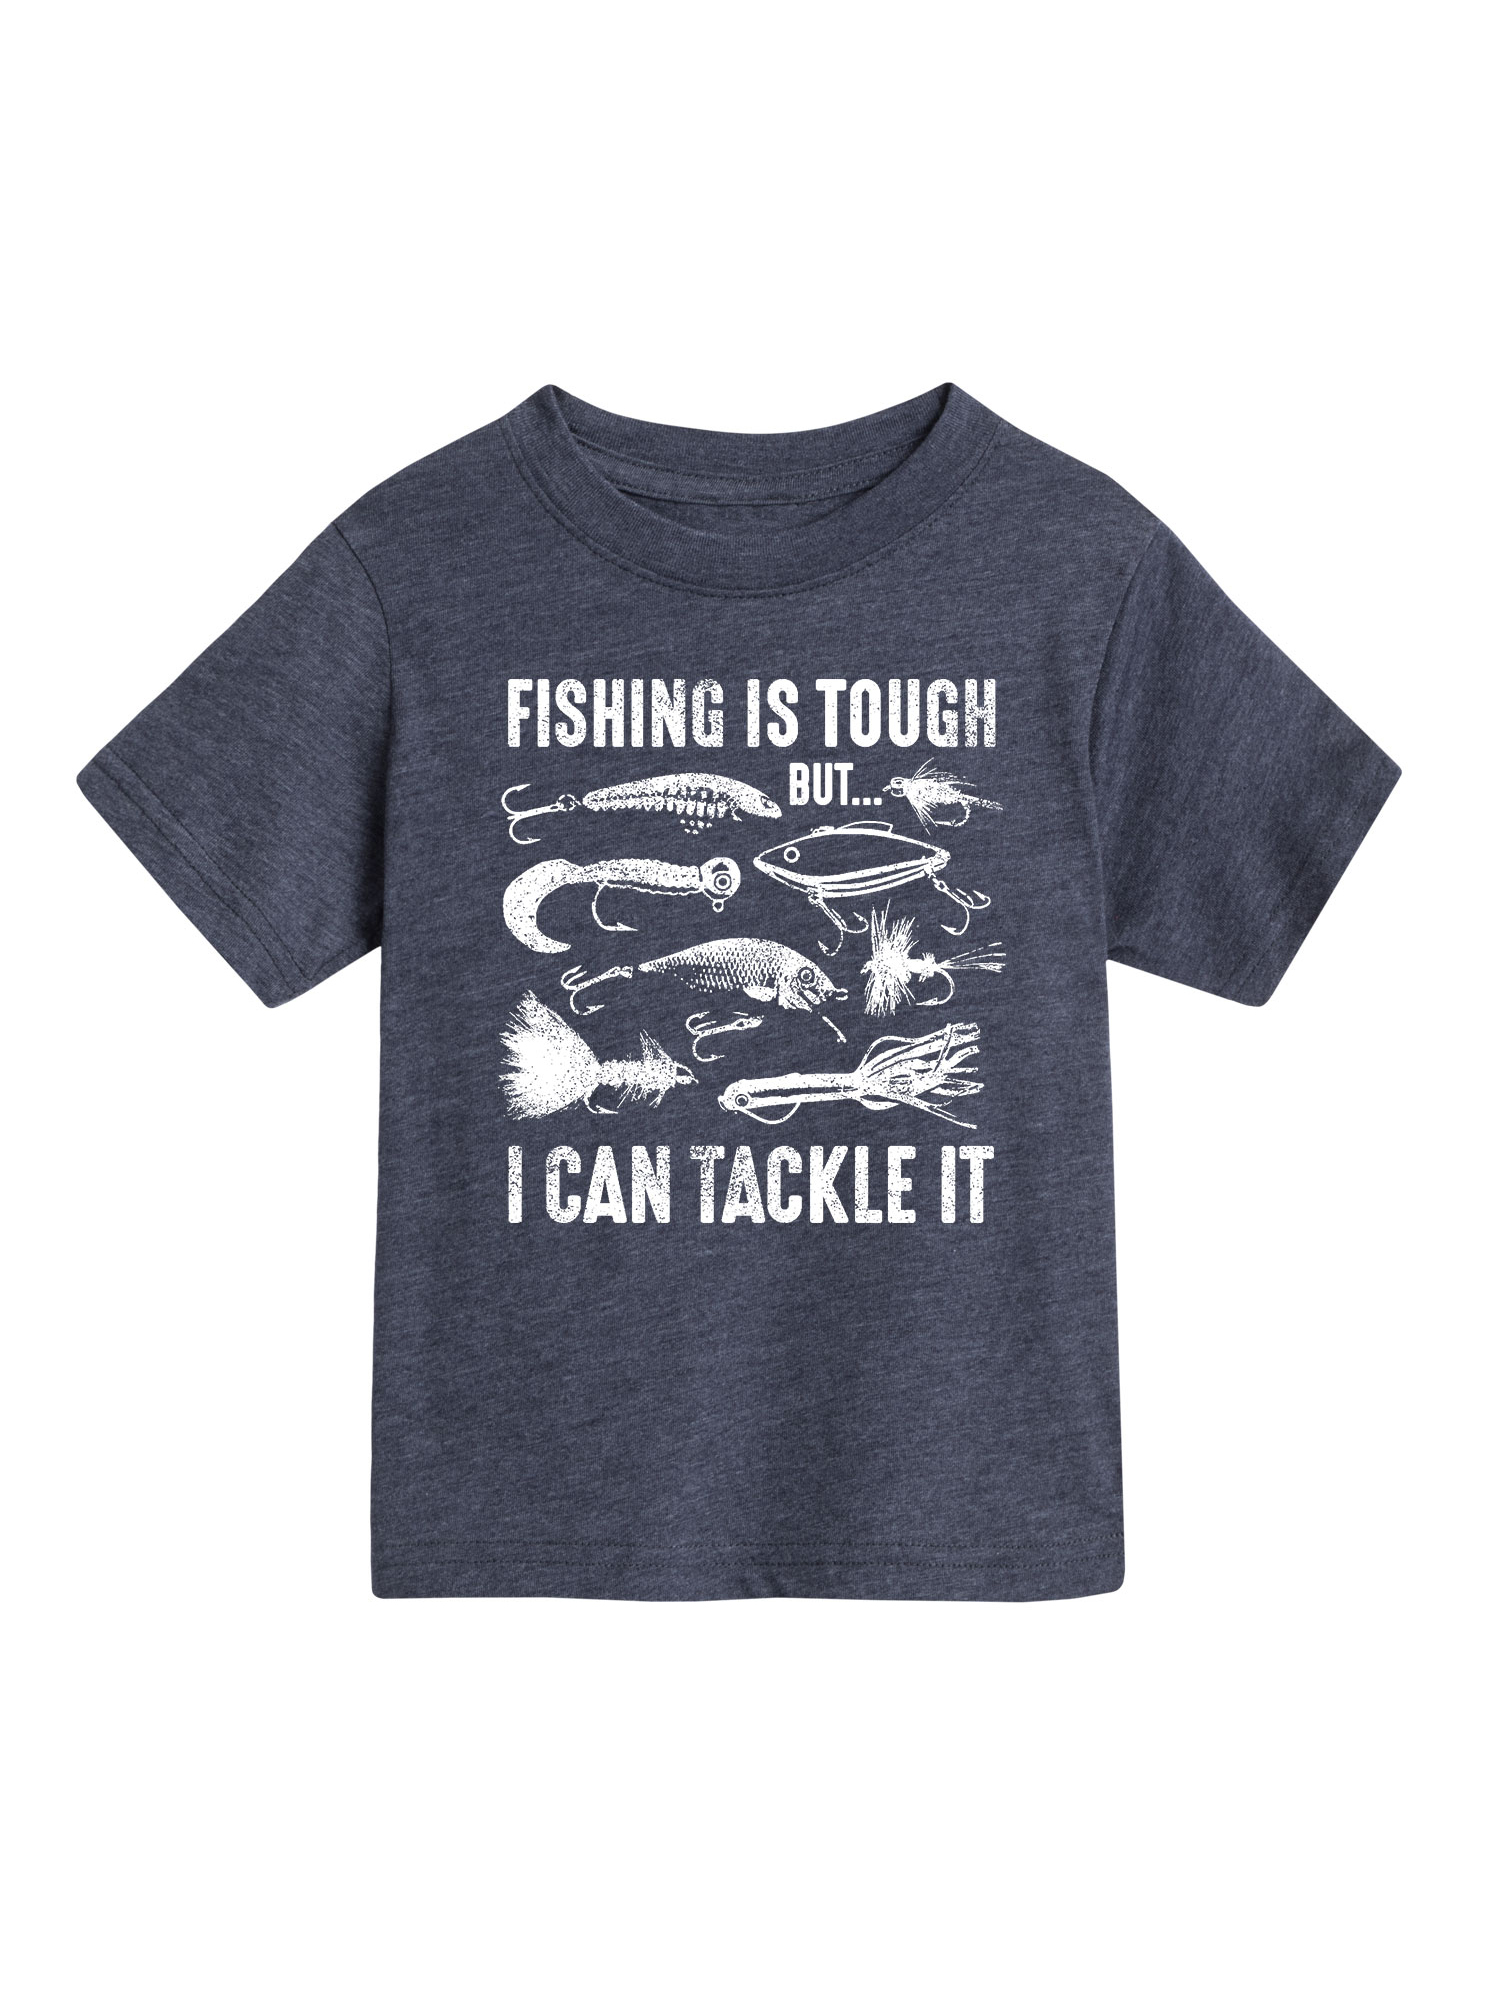 Fishing Is Tough Tackle It - Toddler Short Sleeve Tee